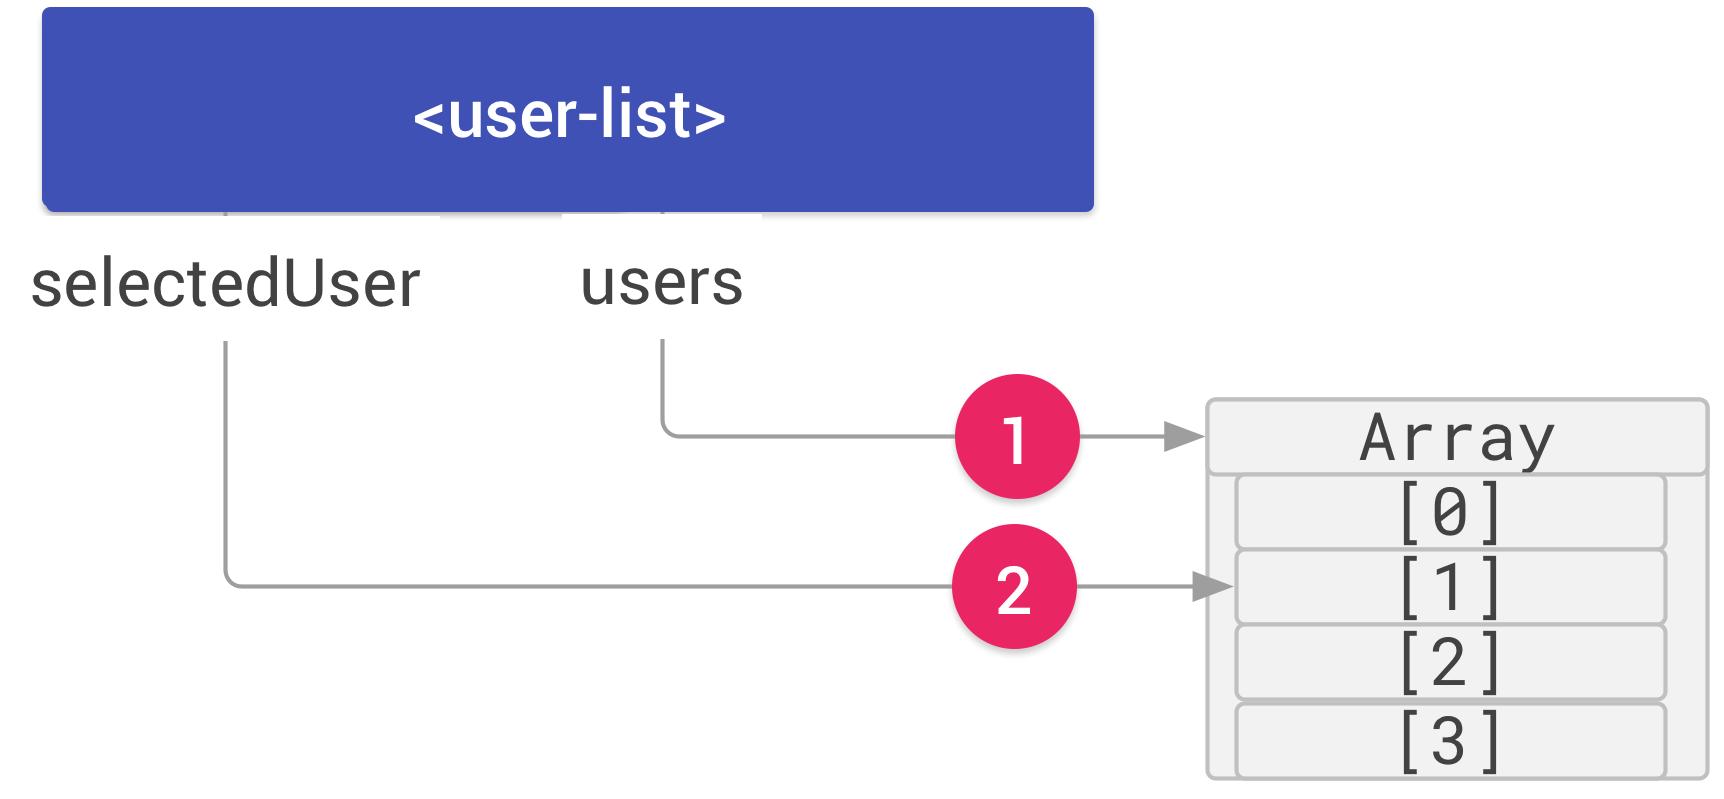 A user-list element and an array with four items labeled [0] through [3]. The user-list has two properties, users and selectedUser. The users property is connected to the array by an arrow labeled 1. The selectedUser property is connected to the array item, [1] by an arrow labeled 2.